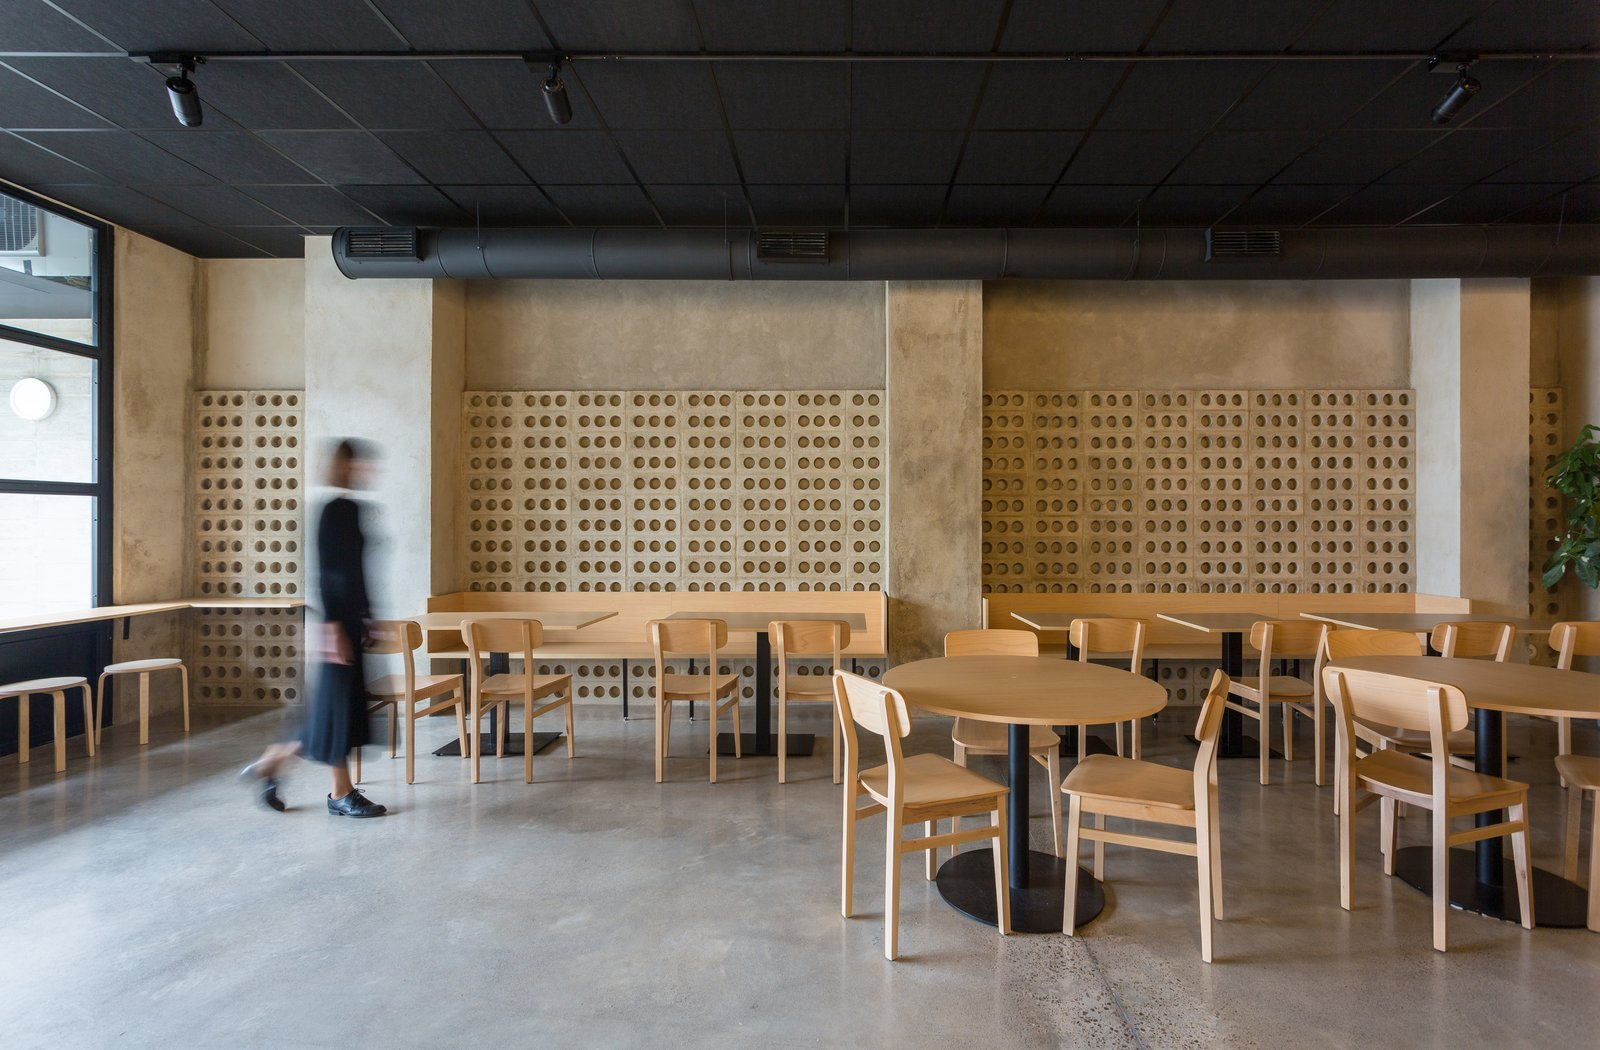 Dining Room, Wall Lighting, Concrete Floor, Bench, Stools, Track Lighting, Table, and Chair The wood stands out in a cement box.  IMOOD Restaurant